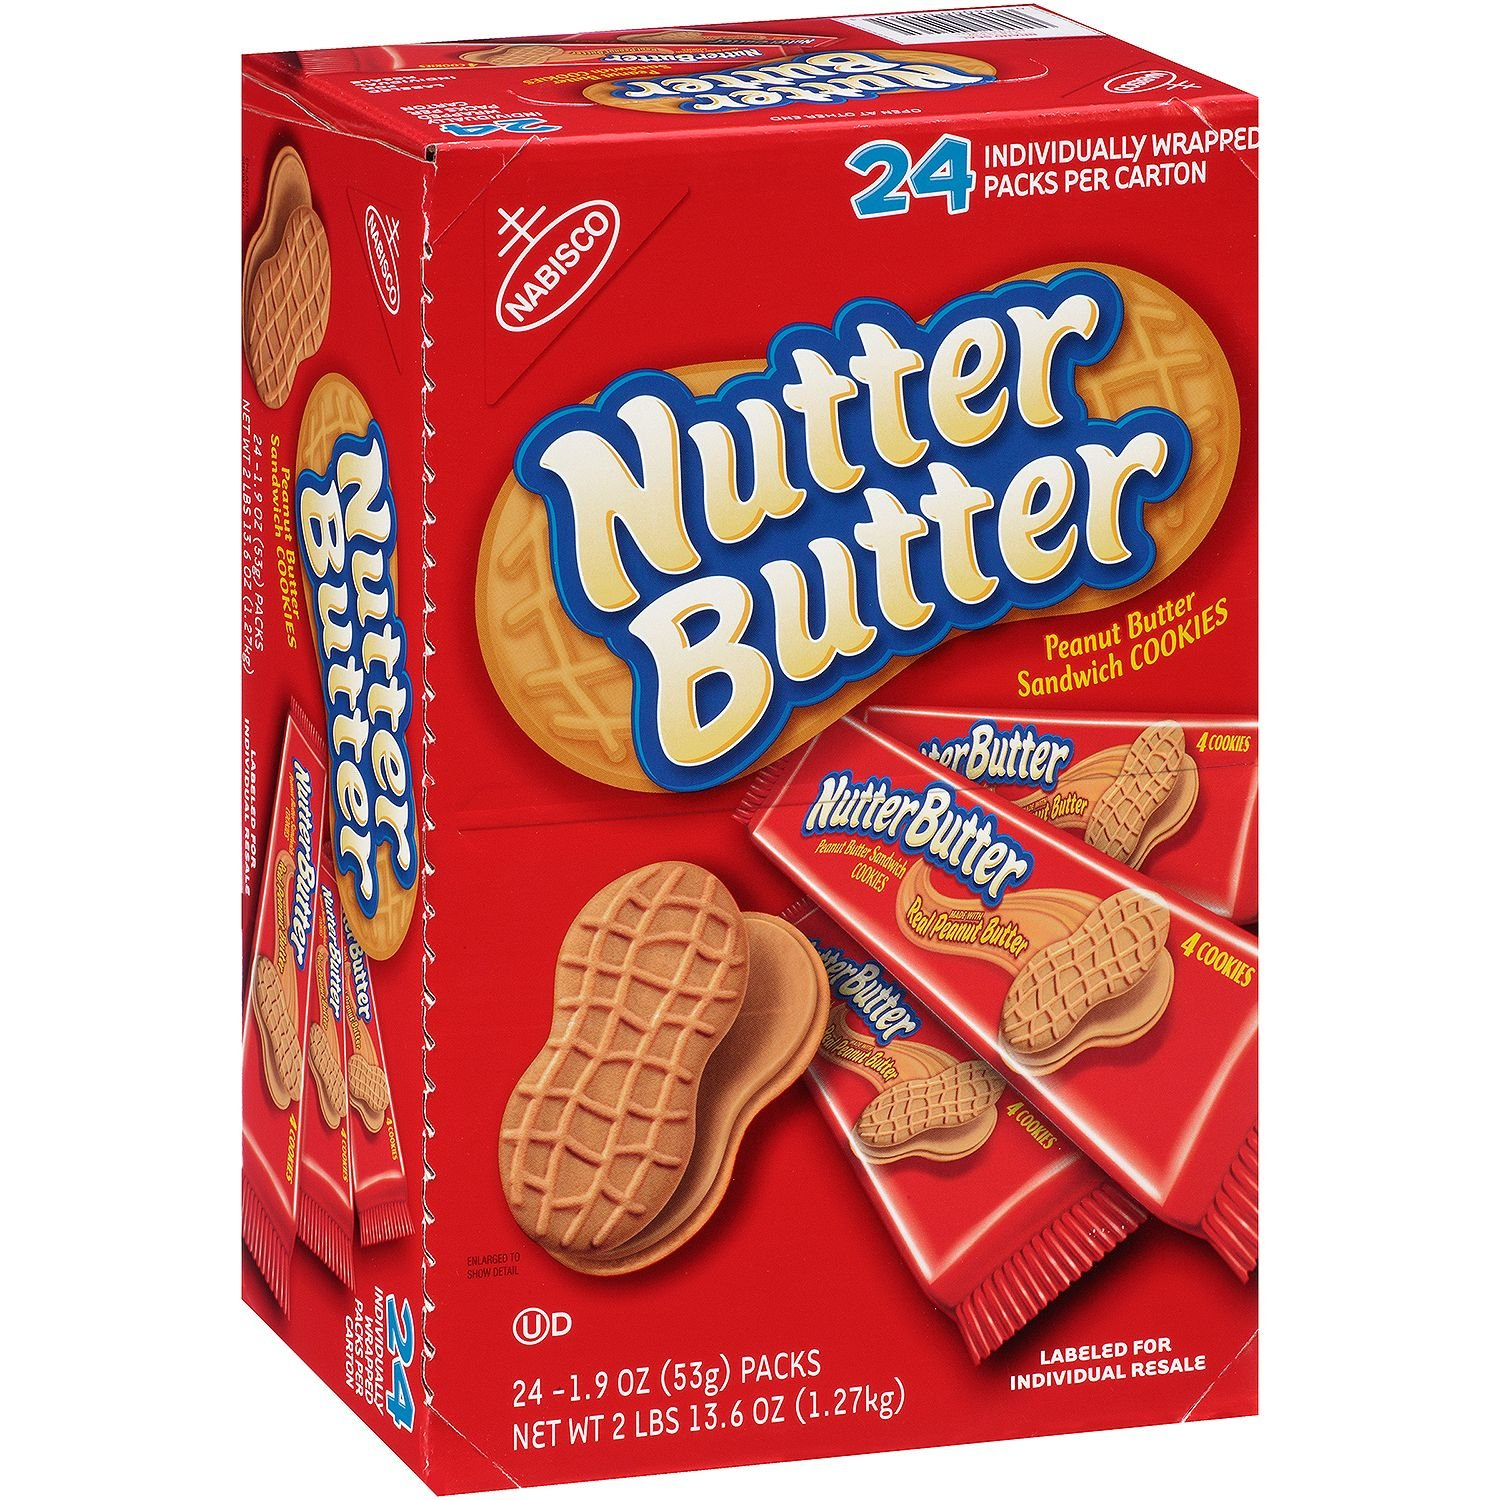 Nabisco Nutter Butter Cookies - 24/1.9 oz. packs by Nabisco